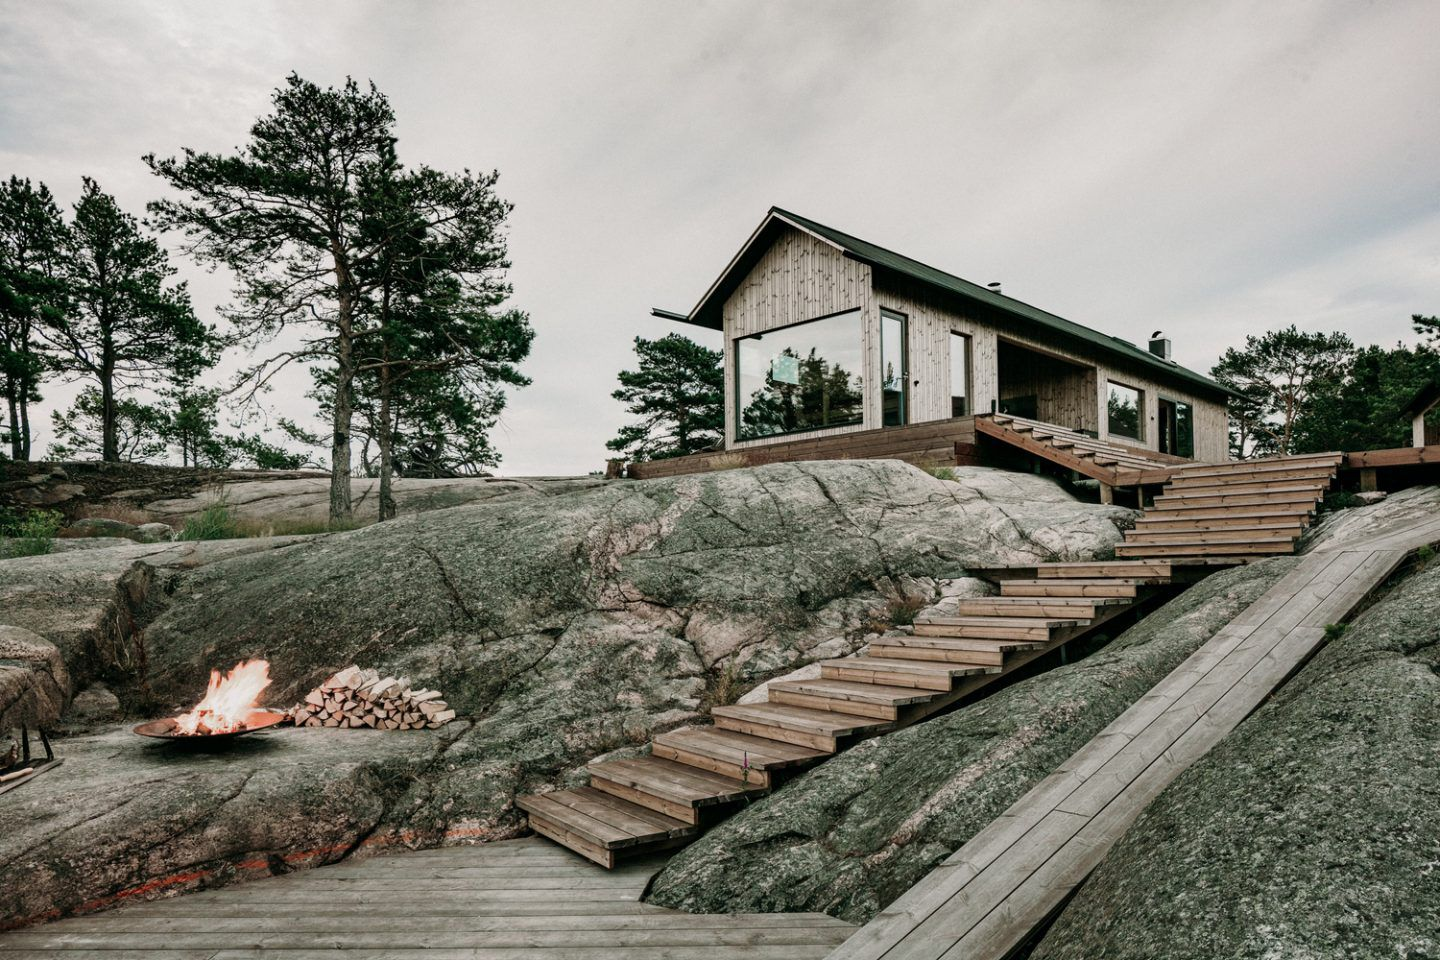 Paradise on Earth in Finland